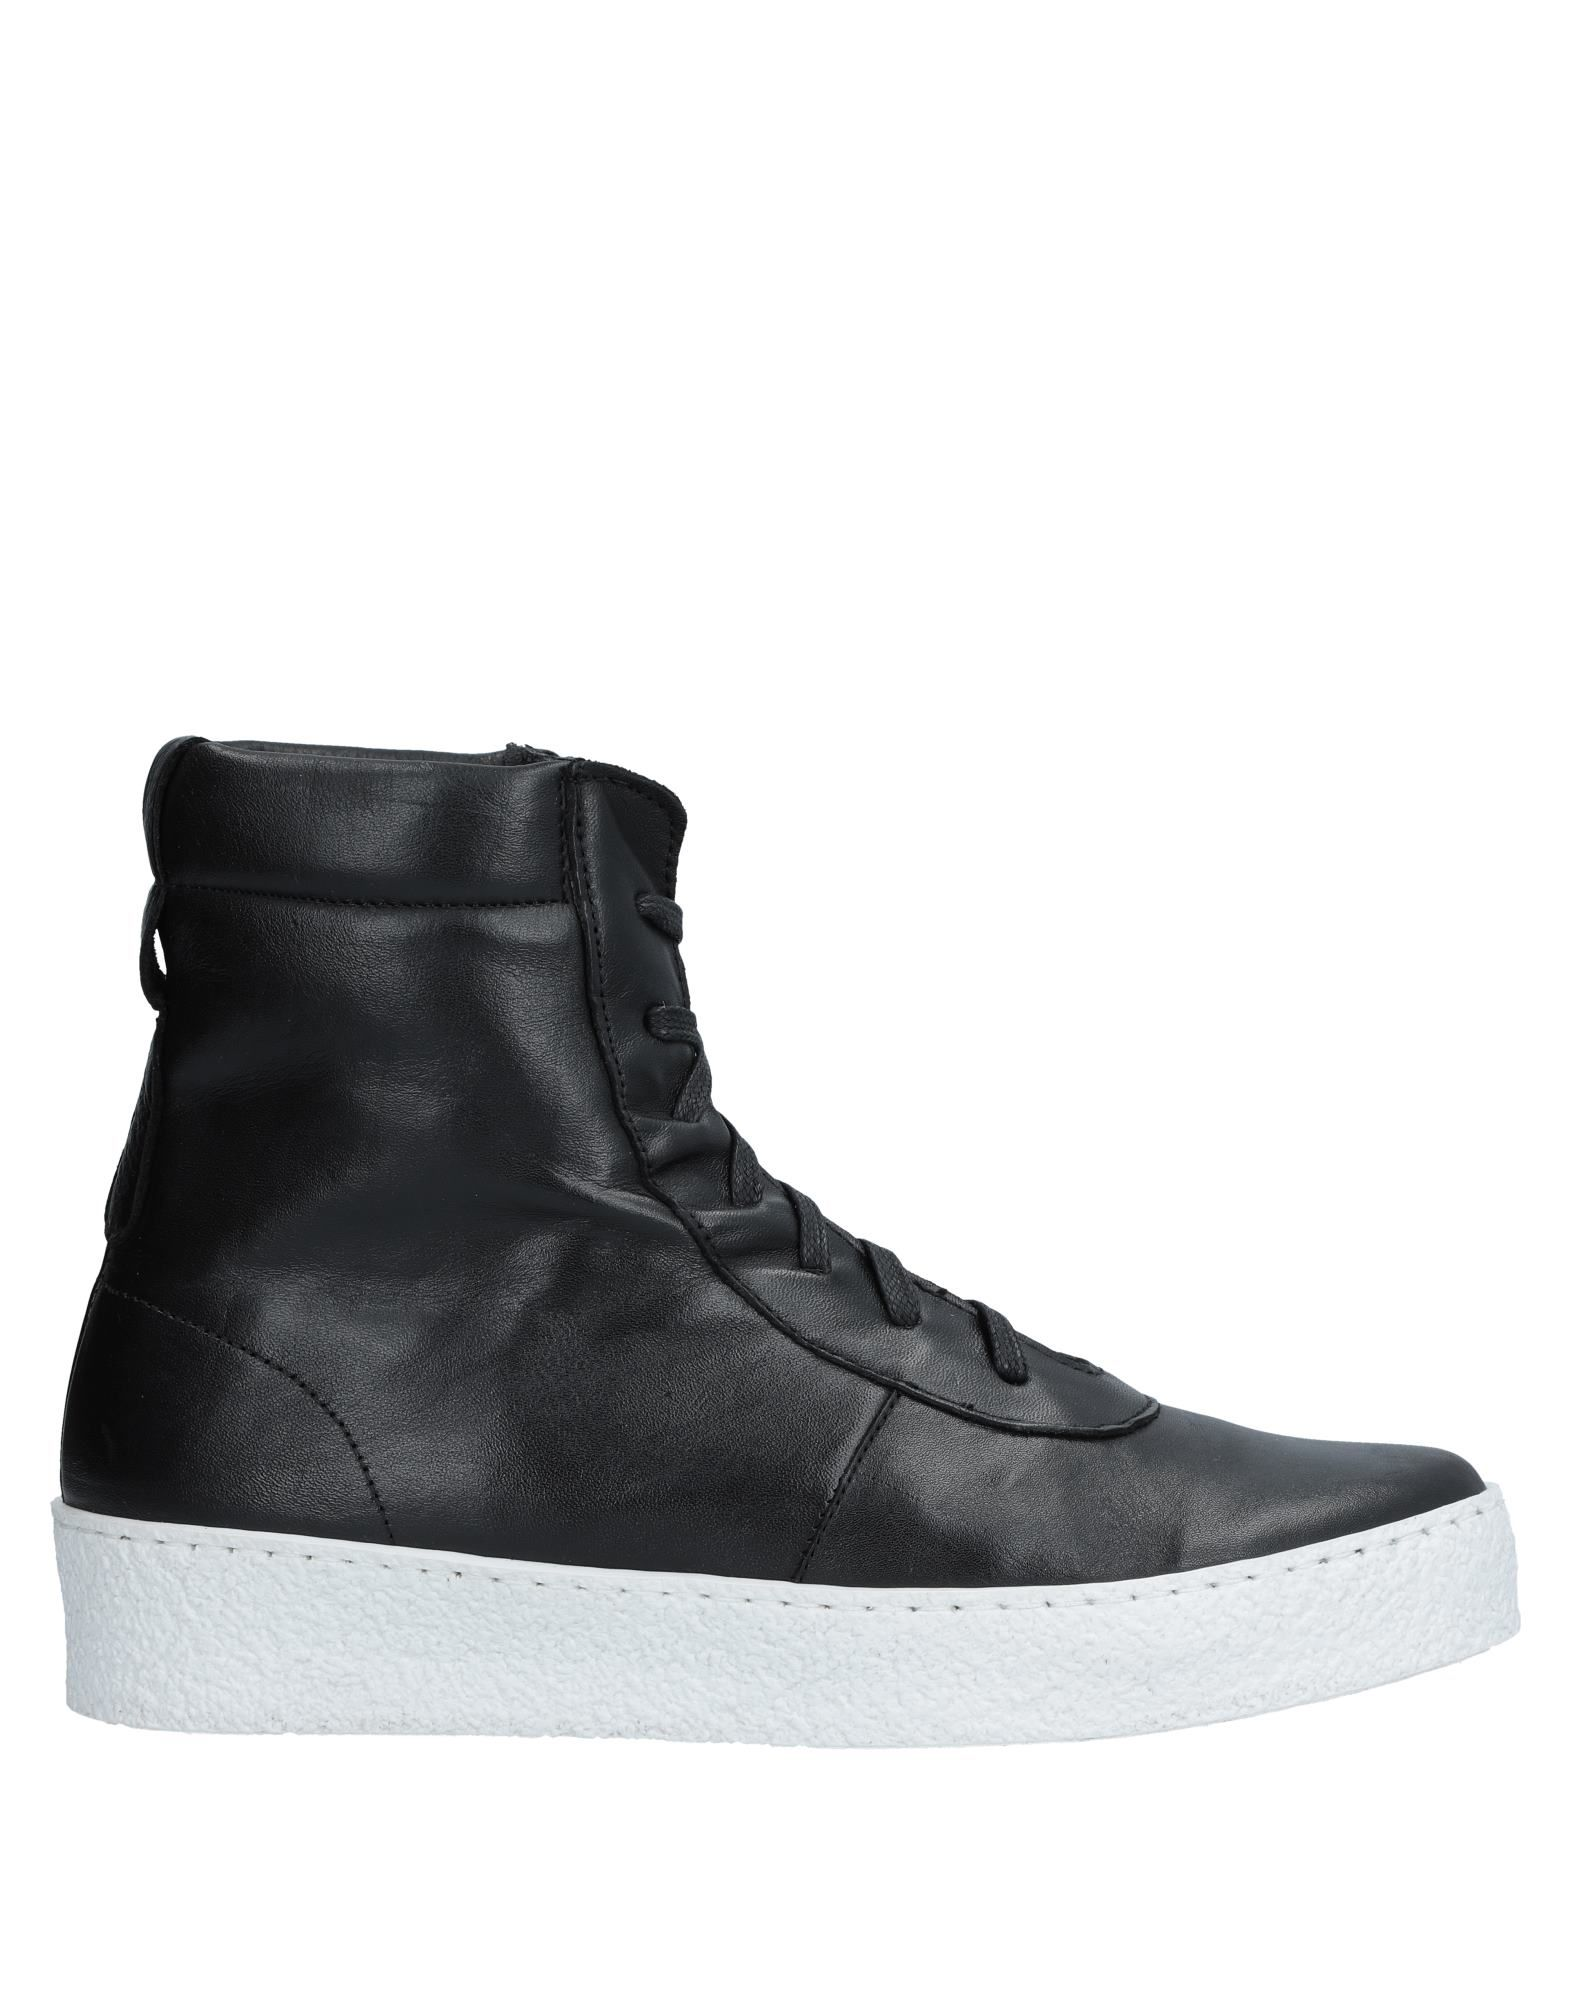 Sneakers Bottega Marchigiana Uomo - 11544379VO